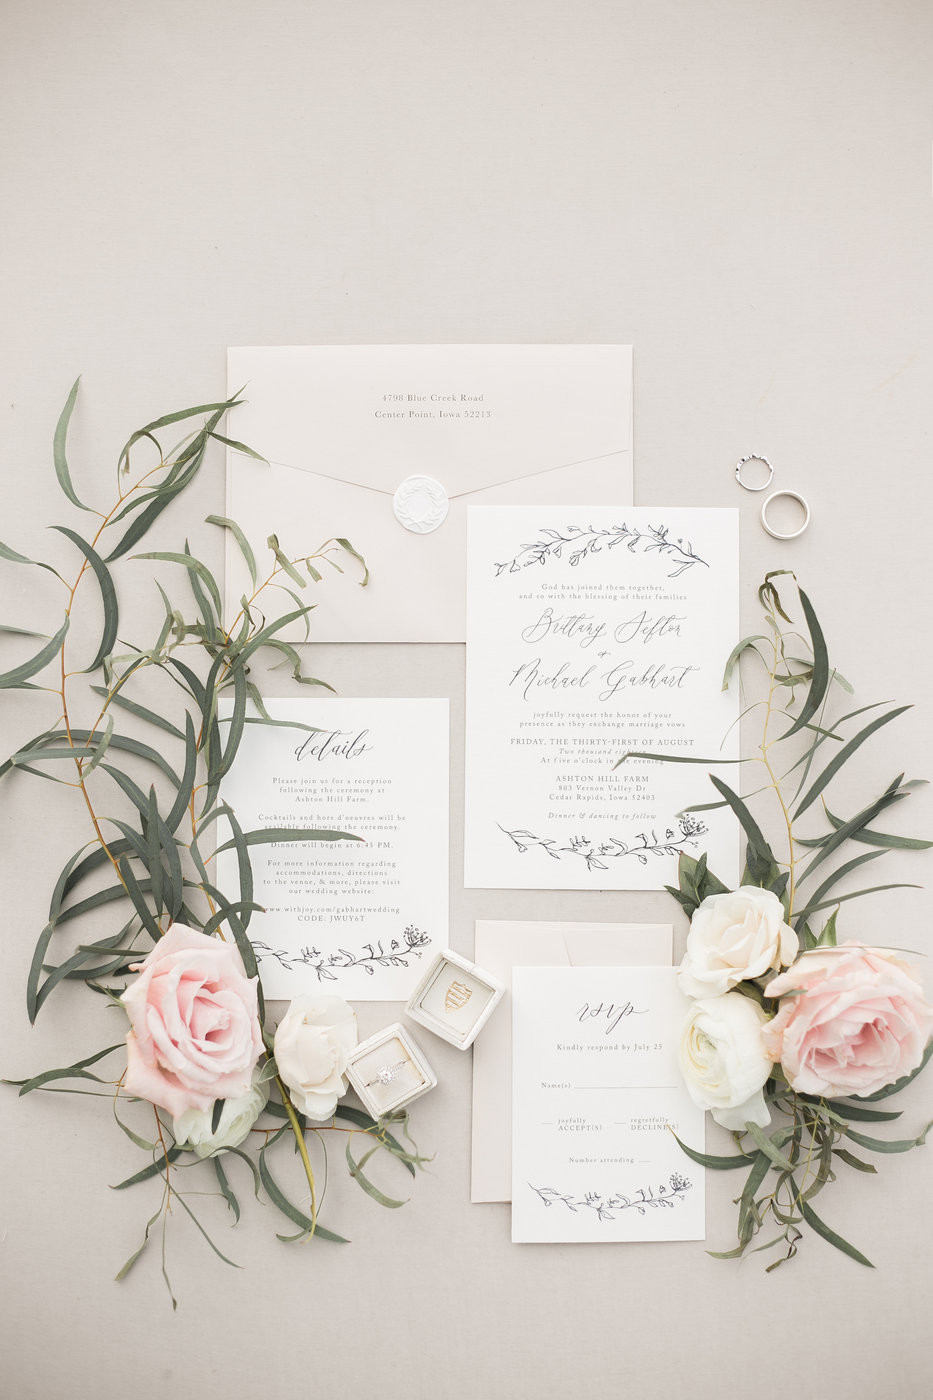 calligraphy invitation suite with rings in a mrs box and flowers and eucalyptus